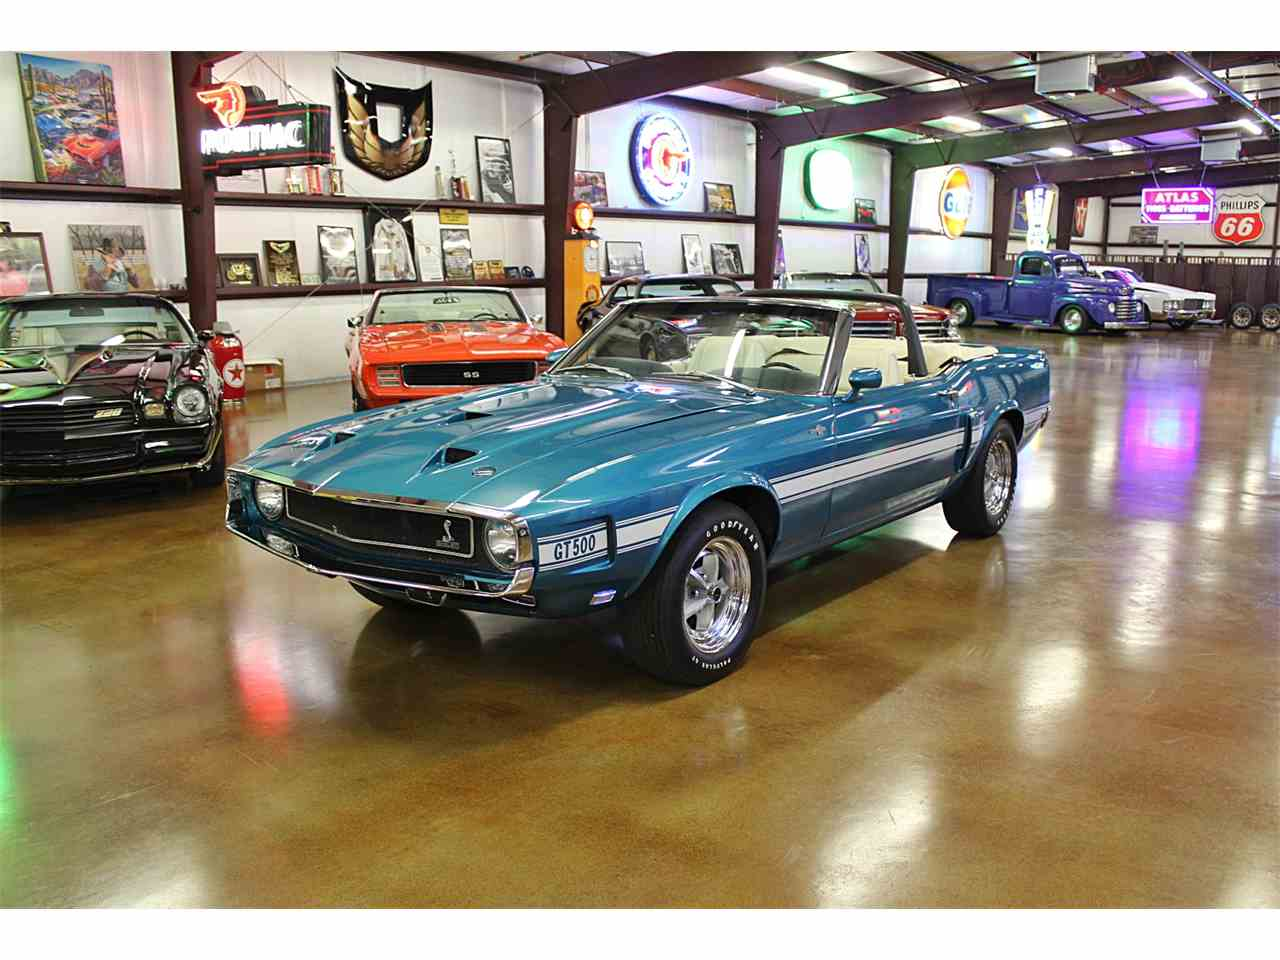 Classic Cars For Sale Houston Area: 1969 Shelby GT500 For Sale